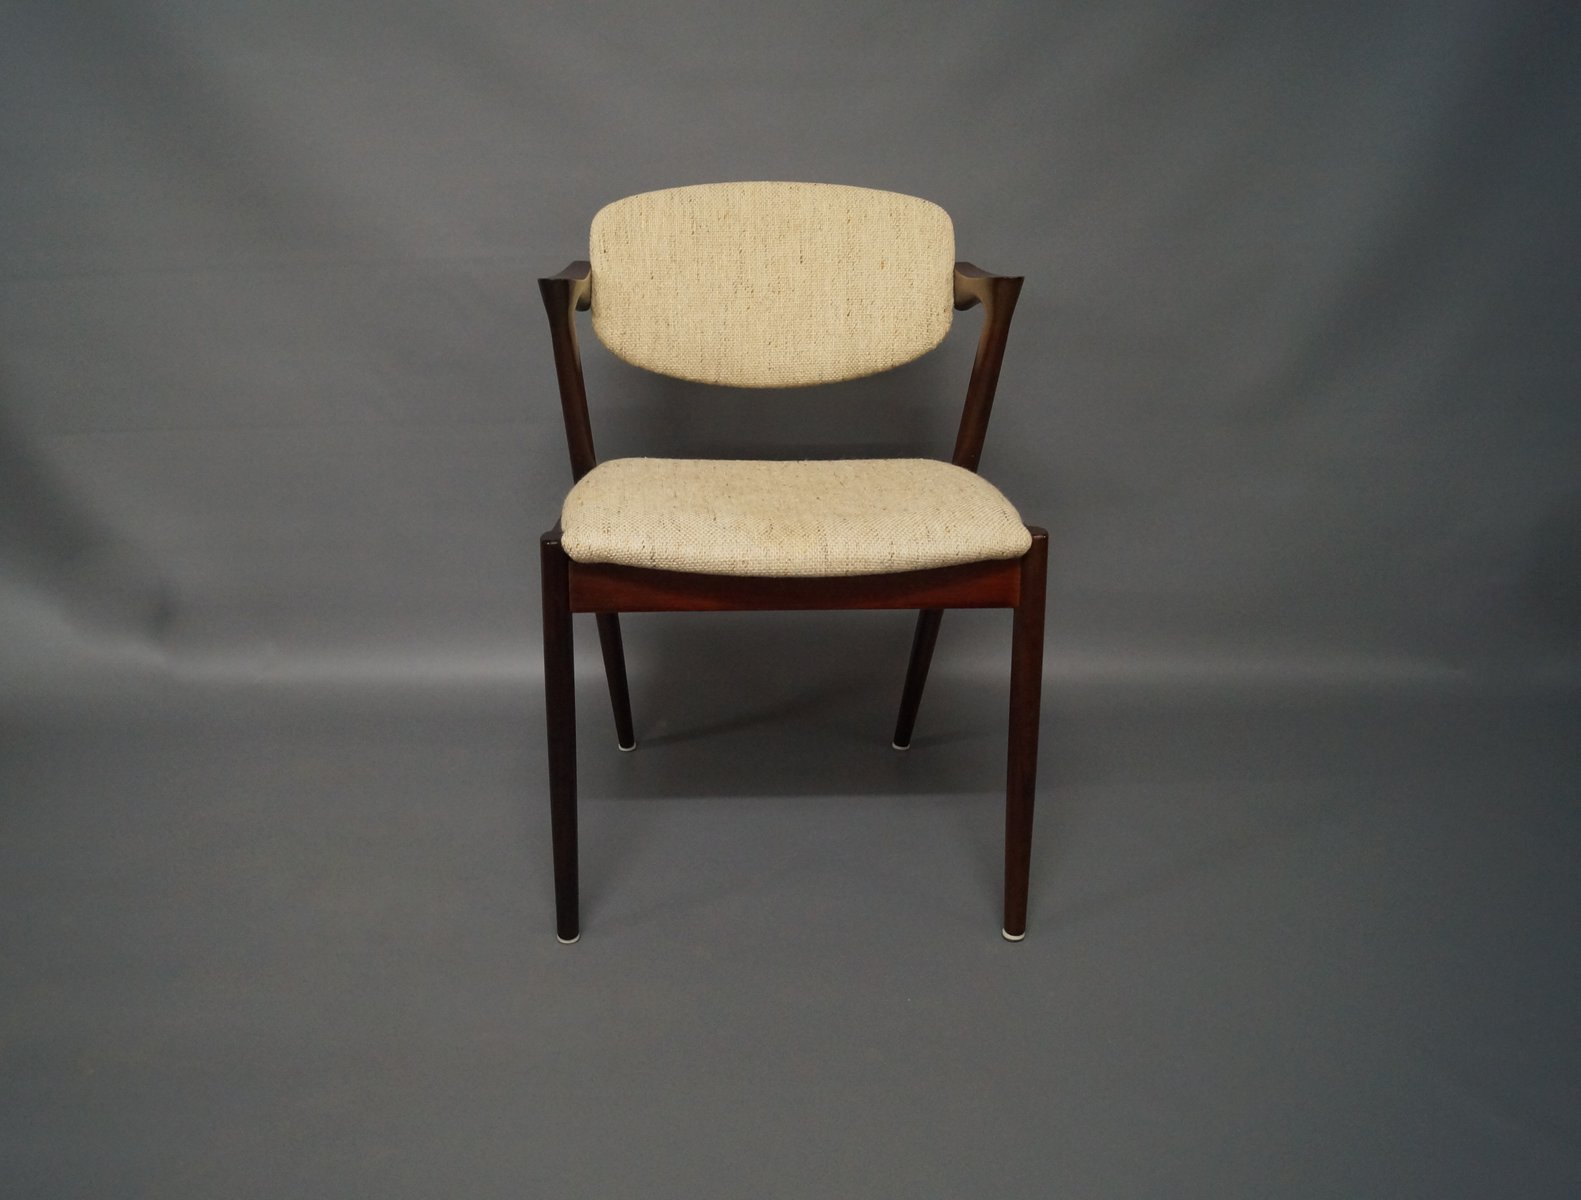 Model 42 rosewood dining chairs by kai kristiansen 1960s set of 6 for sale at pamono - Kai kristiansen chairs ...